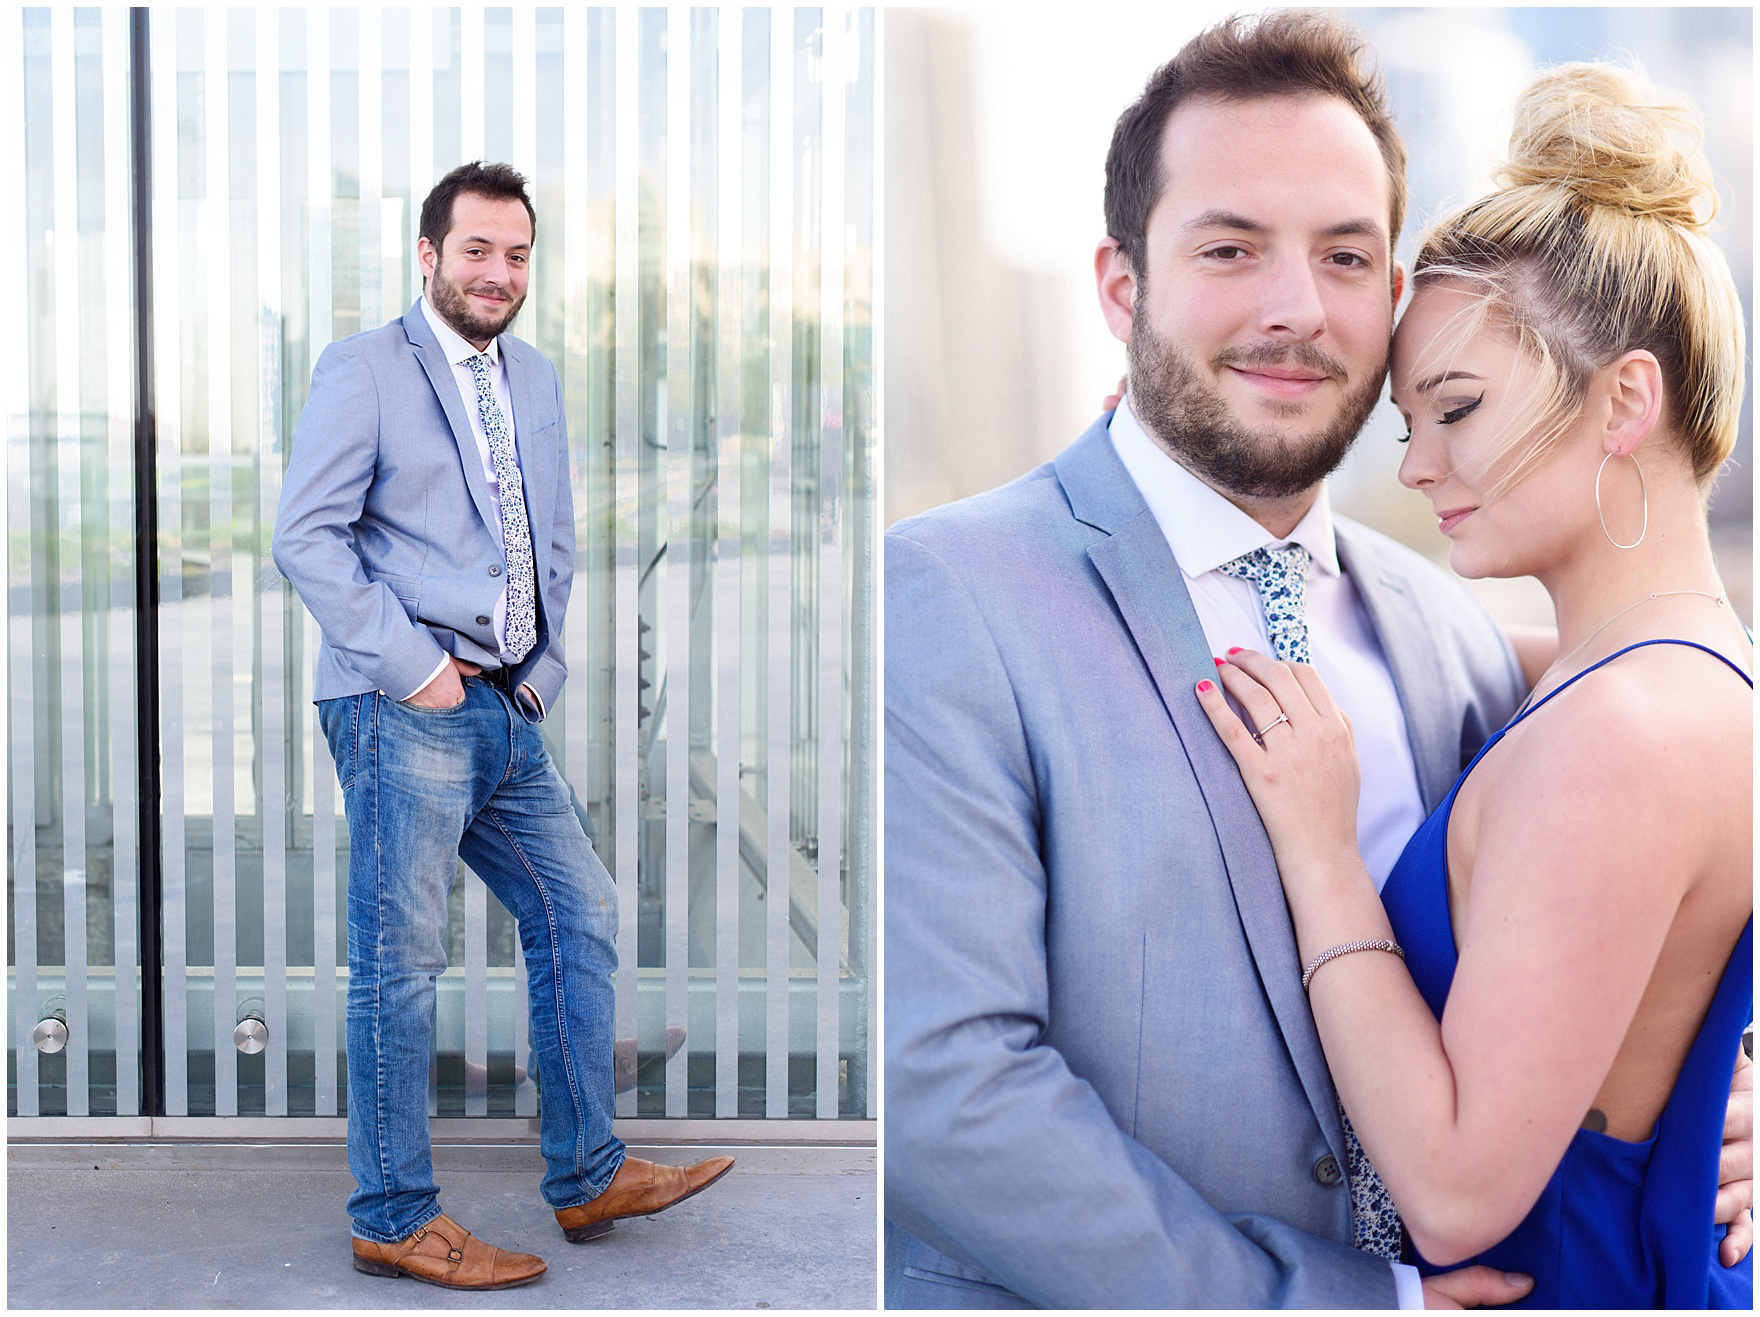 Portraits of the bride and groom to be during a Chicago Navy Pier engagement photography session.